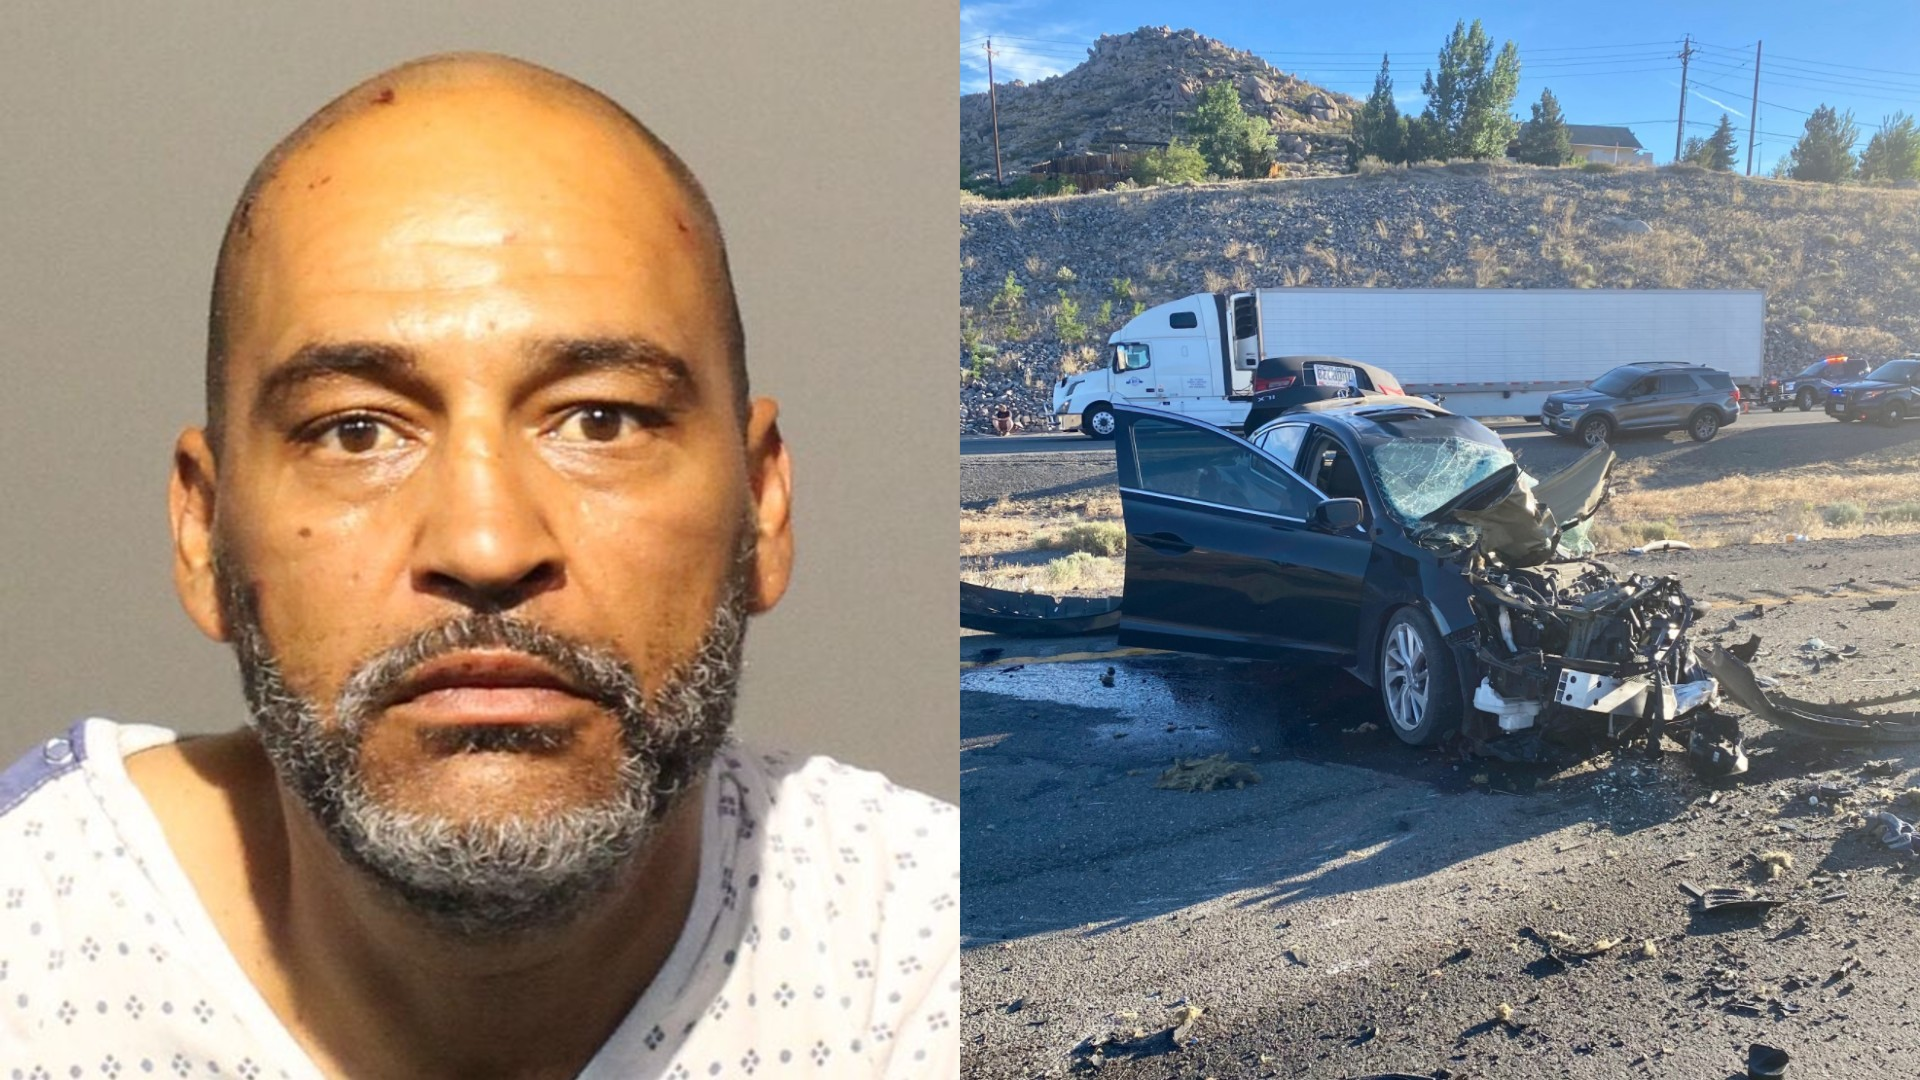 Laron Edward, left, is seen in a booking photo released by the Washoe County Jail; at right, an image of the crash site from the Nevada Highway Patrol.